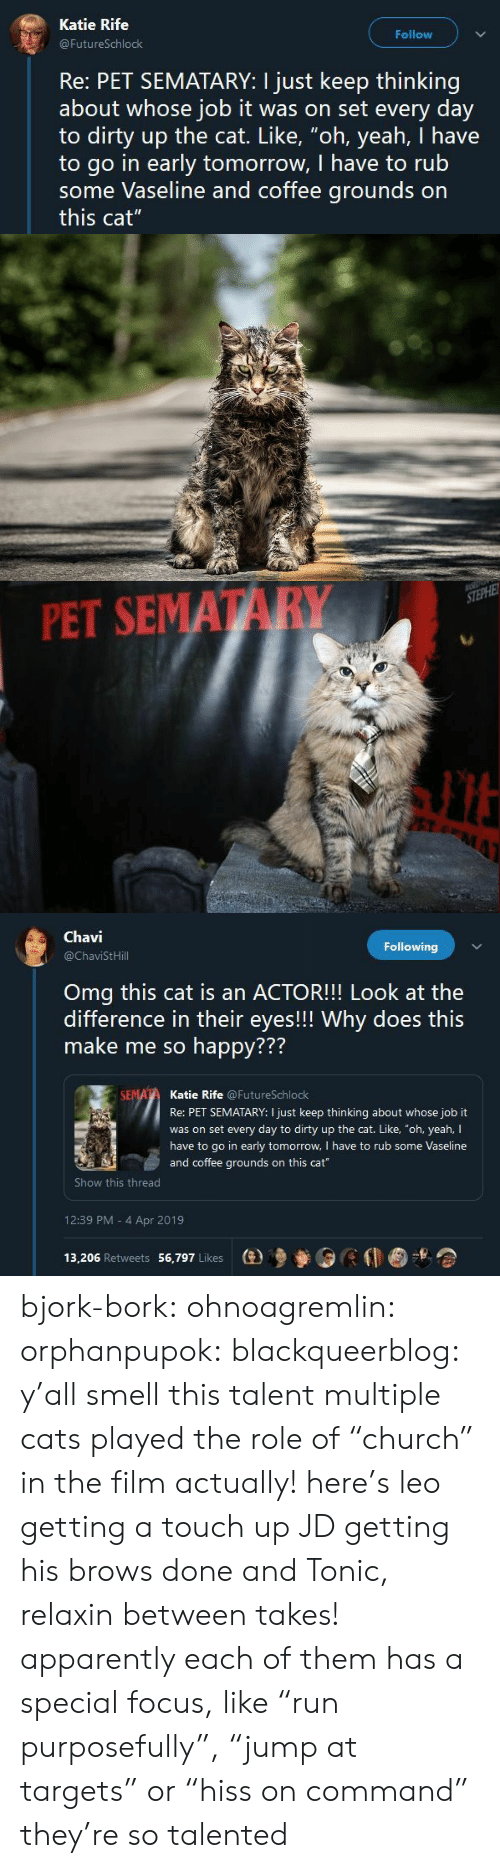 """Apparently, Cats, and Omg: Katie Rife  Follow  FutureSchlock  Re: PET SEMATARY: I just keep thinking  about whose job it was on set every day  to dirty up the cat. Like, """"oh, yeah, I have  to go in early tomorrow, I have to rub  some Vaseline and coffee grounds on  this cat""""   PET SEMATARY   Chavi  @ChaviStHill  Following  Omg this cat is an ACTOR!!! Look at the  difference in their eyes!!! Why does this  make me so happy???  772  Katie Rife @FutureSchlock  Re: PET SEMATARY: I just keep thinking about whose job it  was on set every day to dirty up the cat. Like, """"oh, yeah, I  have to go in early tomorrow, I have to rub some Vaseline  and coffee grounds on this cat  Show this thread  12:39 PM - 4 Apr 2019  13,206 Retweets 56,797 Likes  (e)乡參0 bjork-bork:  ohnoagremlin:  orphanpupok:  blackqueerblog: y'all smell this talent  multiple cats played the role of """"church"""" in the film actually! here's leo getting a touch up JD getting his brows done and Tonic, relaxin between takes!   apparently each of them has a special focus, like """"run purposefully"""", """"jump at targets"""" or """"hiss on command"""" they're so talented"""